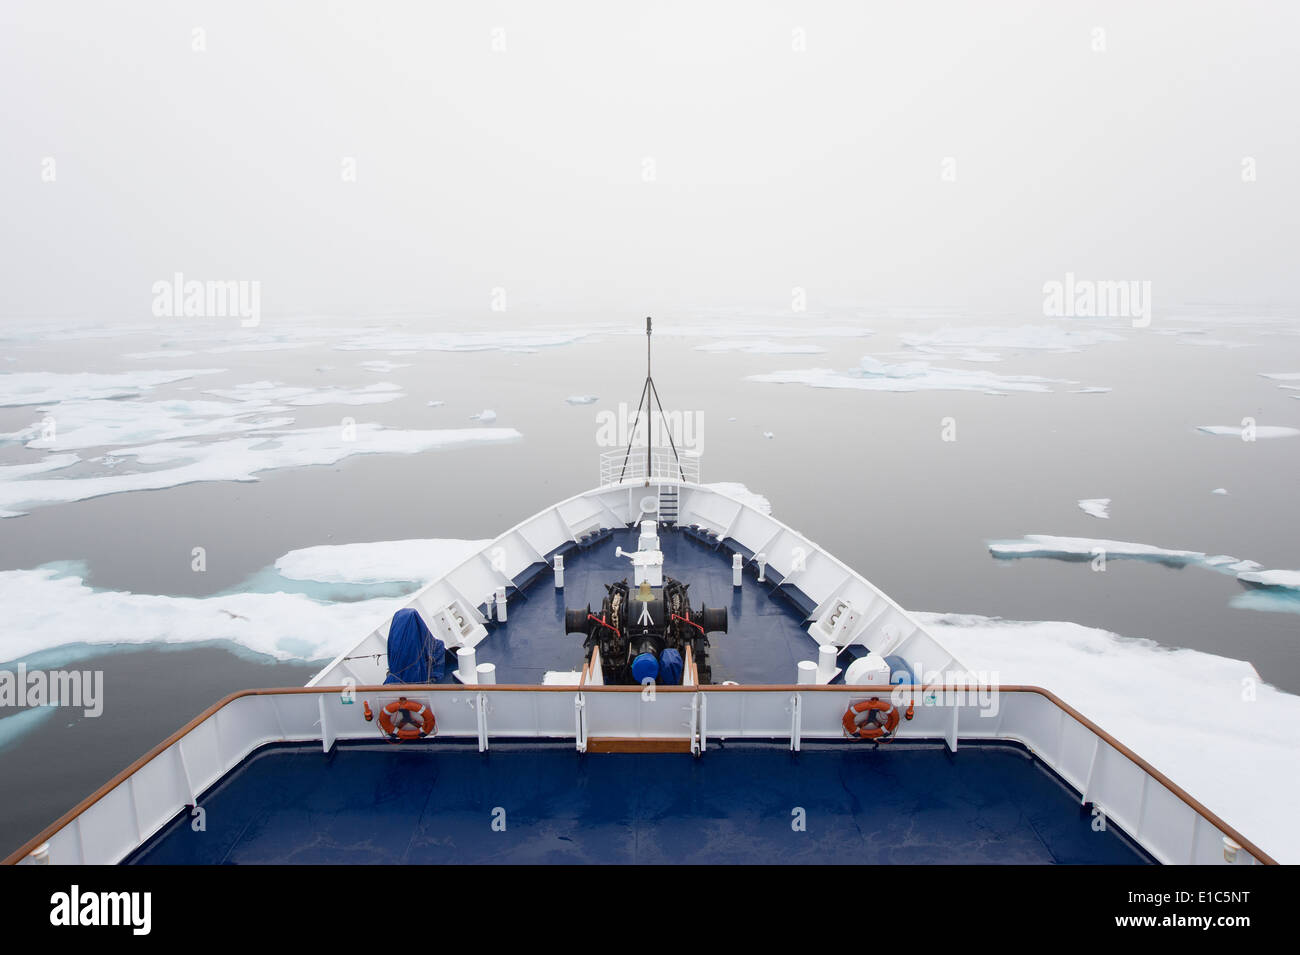 The view over the decks of a cruise ship in the Canadian Arctic region, moving through ice floes. - Stock Image